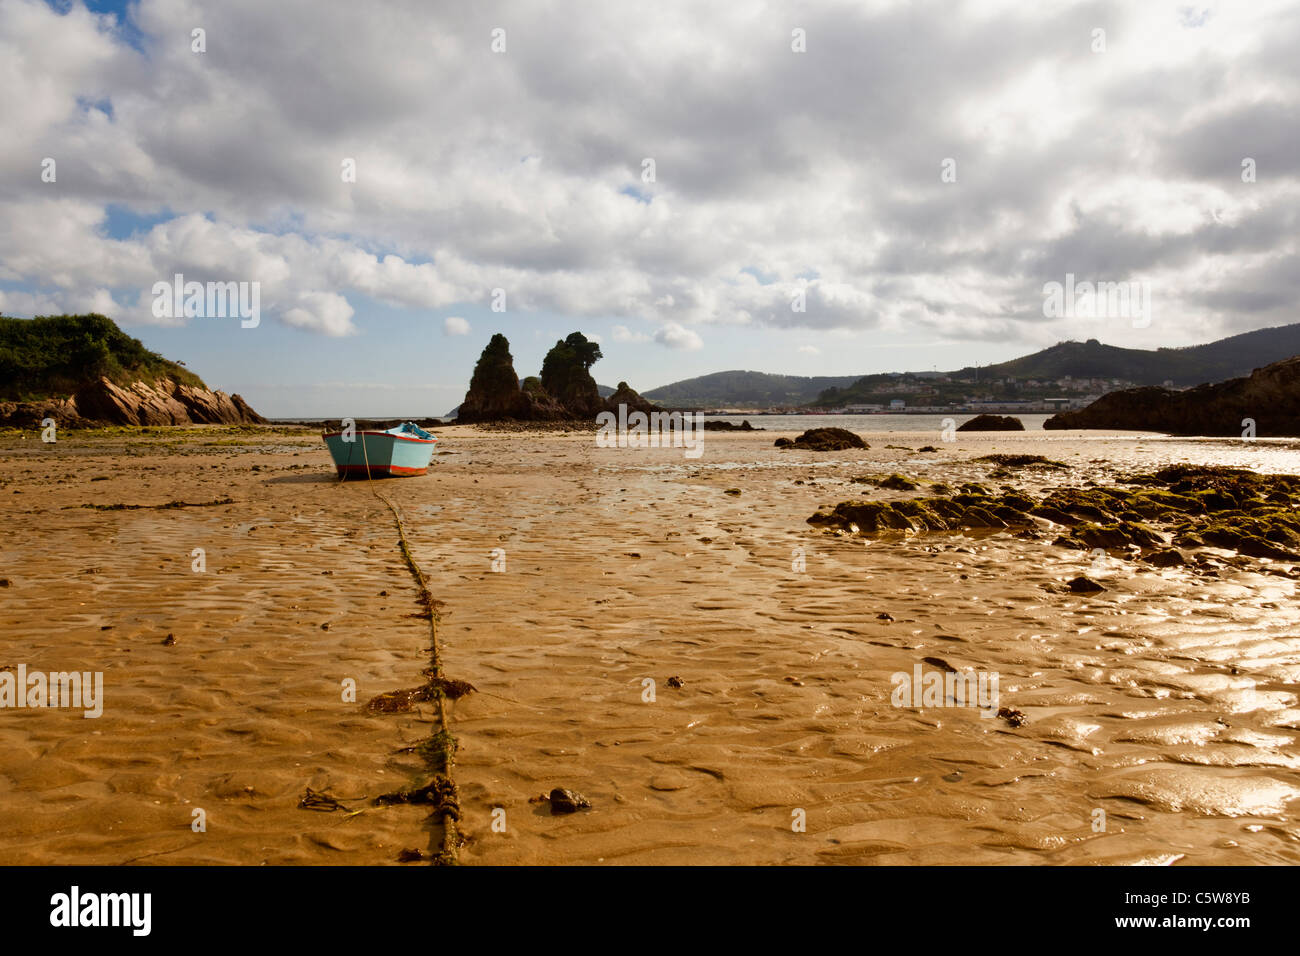 Spain, Ria de Viveiro, View of stranded boat in mub at bay - Stock Image